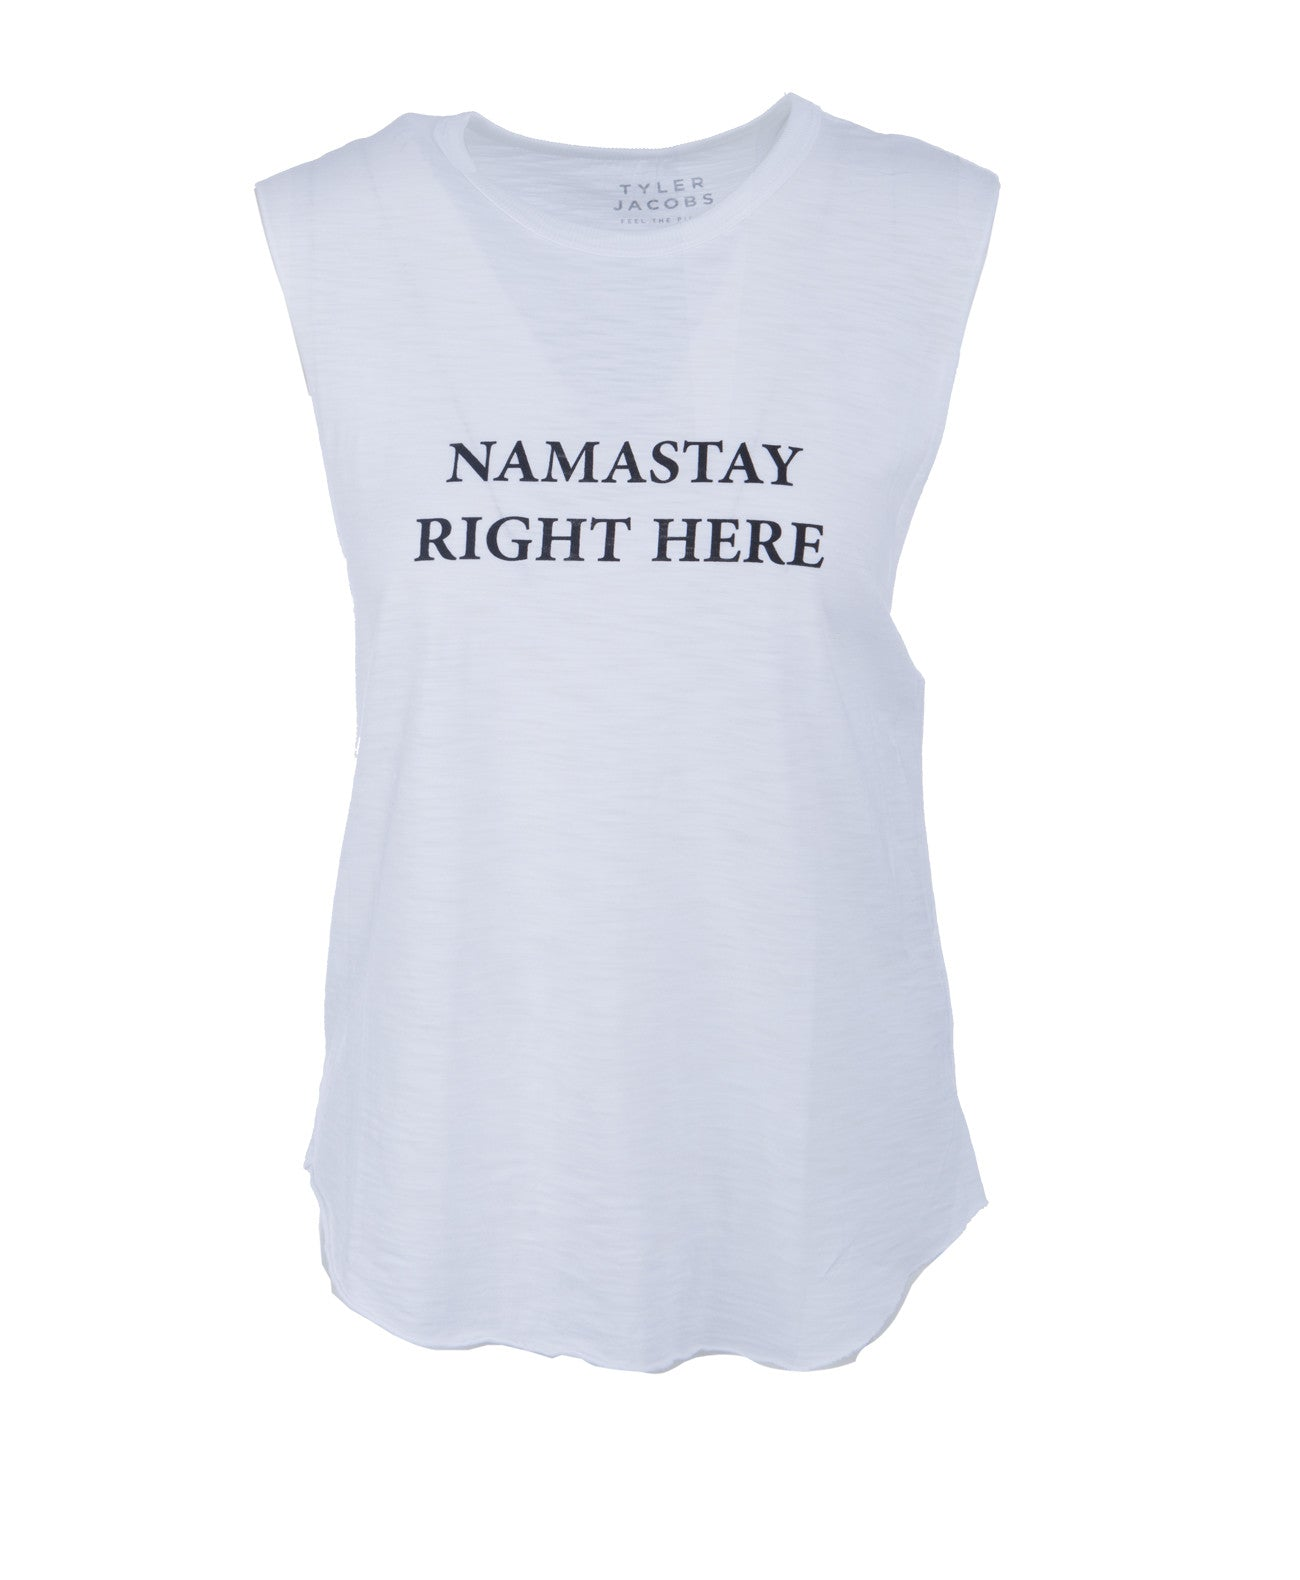 NamastayTee Namastay Right Here Muscle Tee